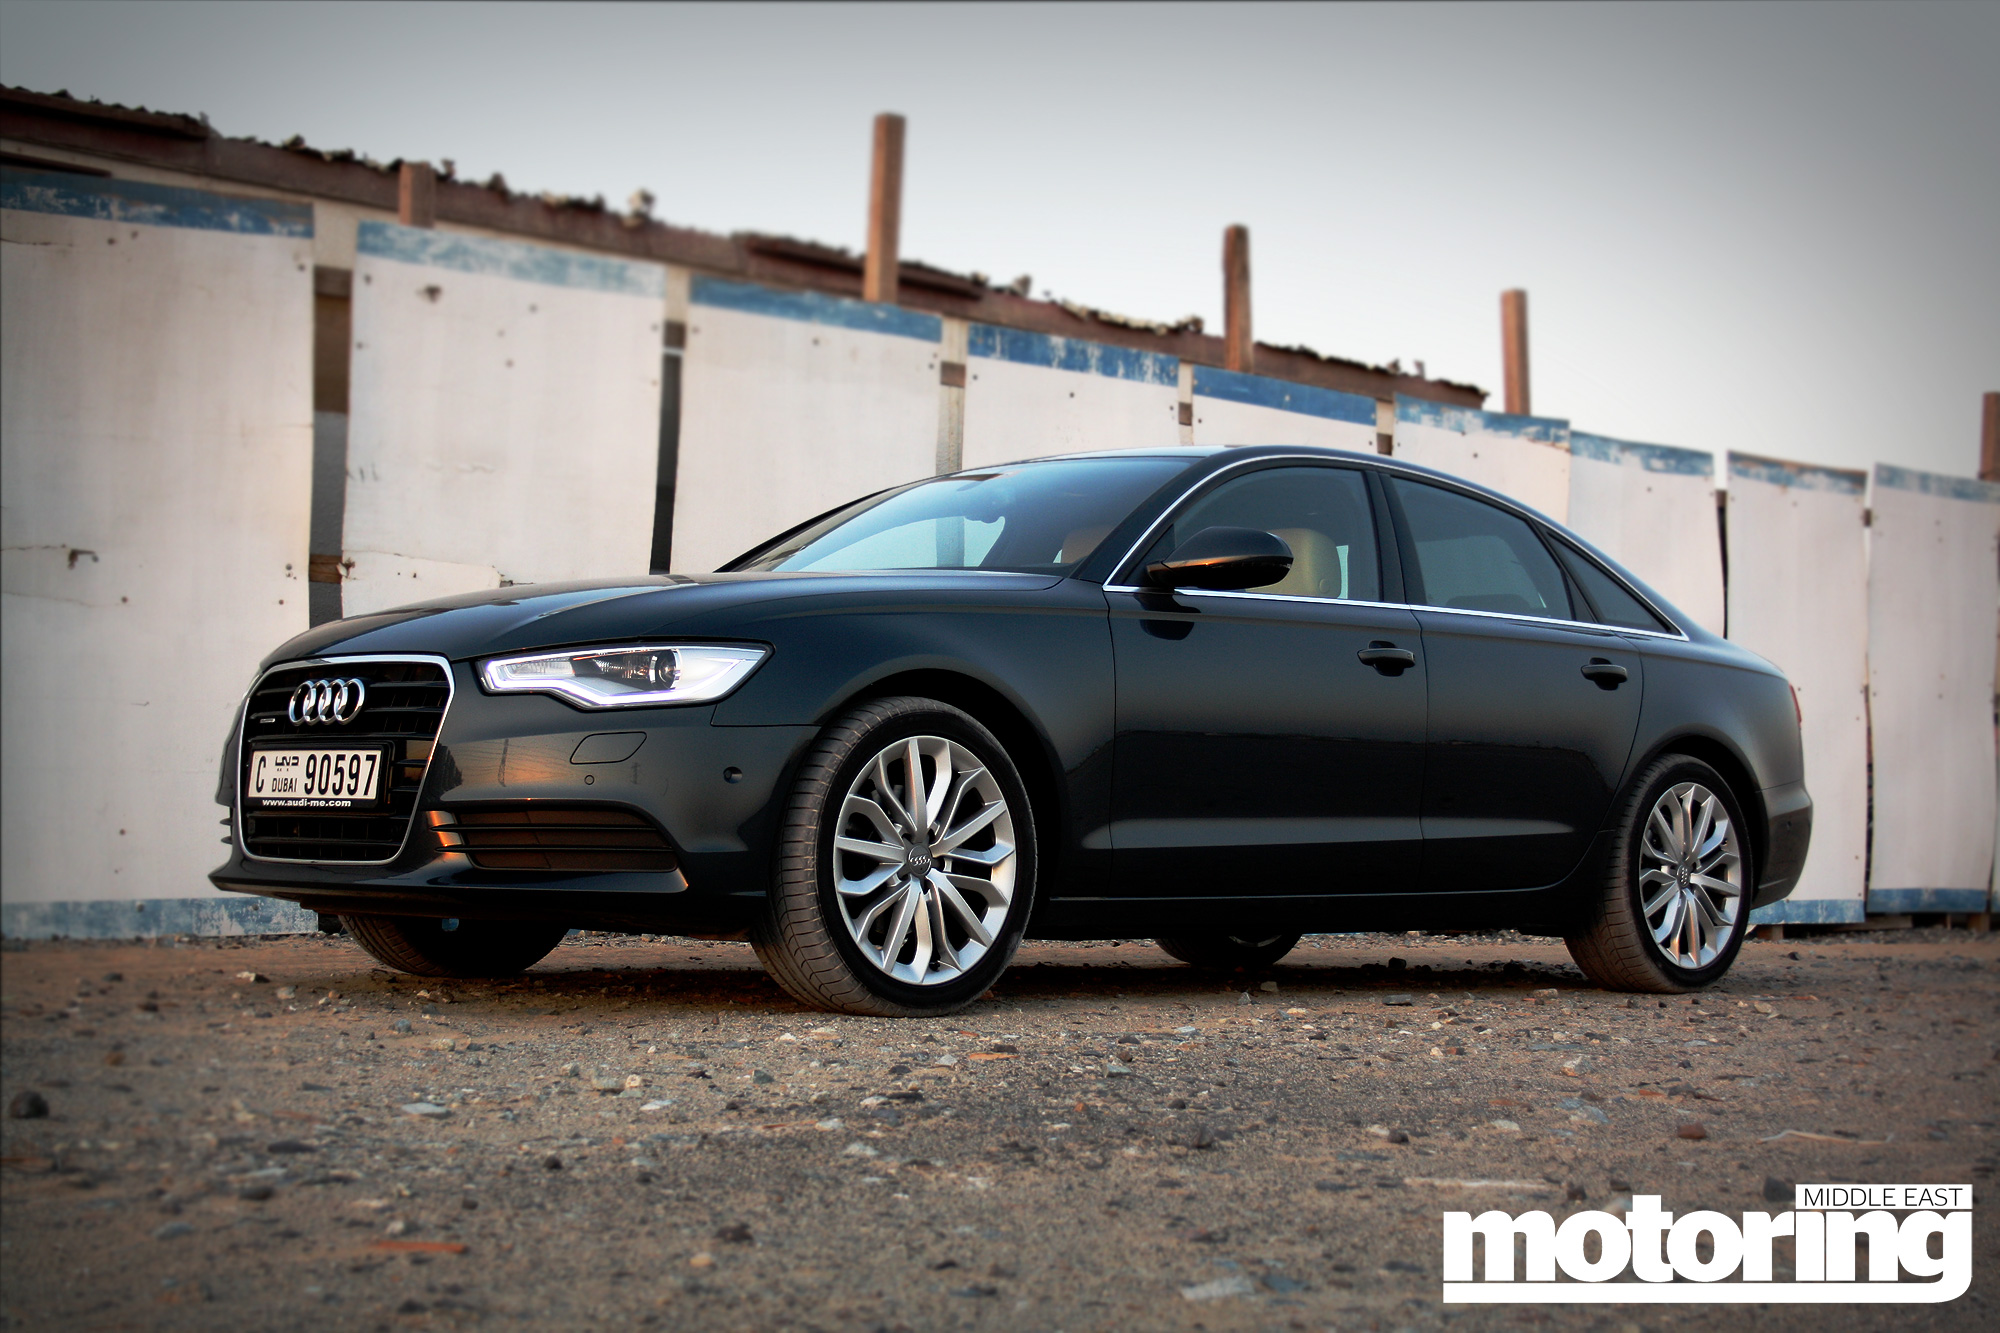 Audi A6 2 8 Fsi Review Motoring Middle East Car News